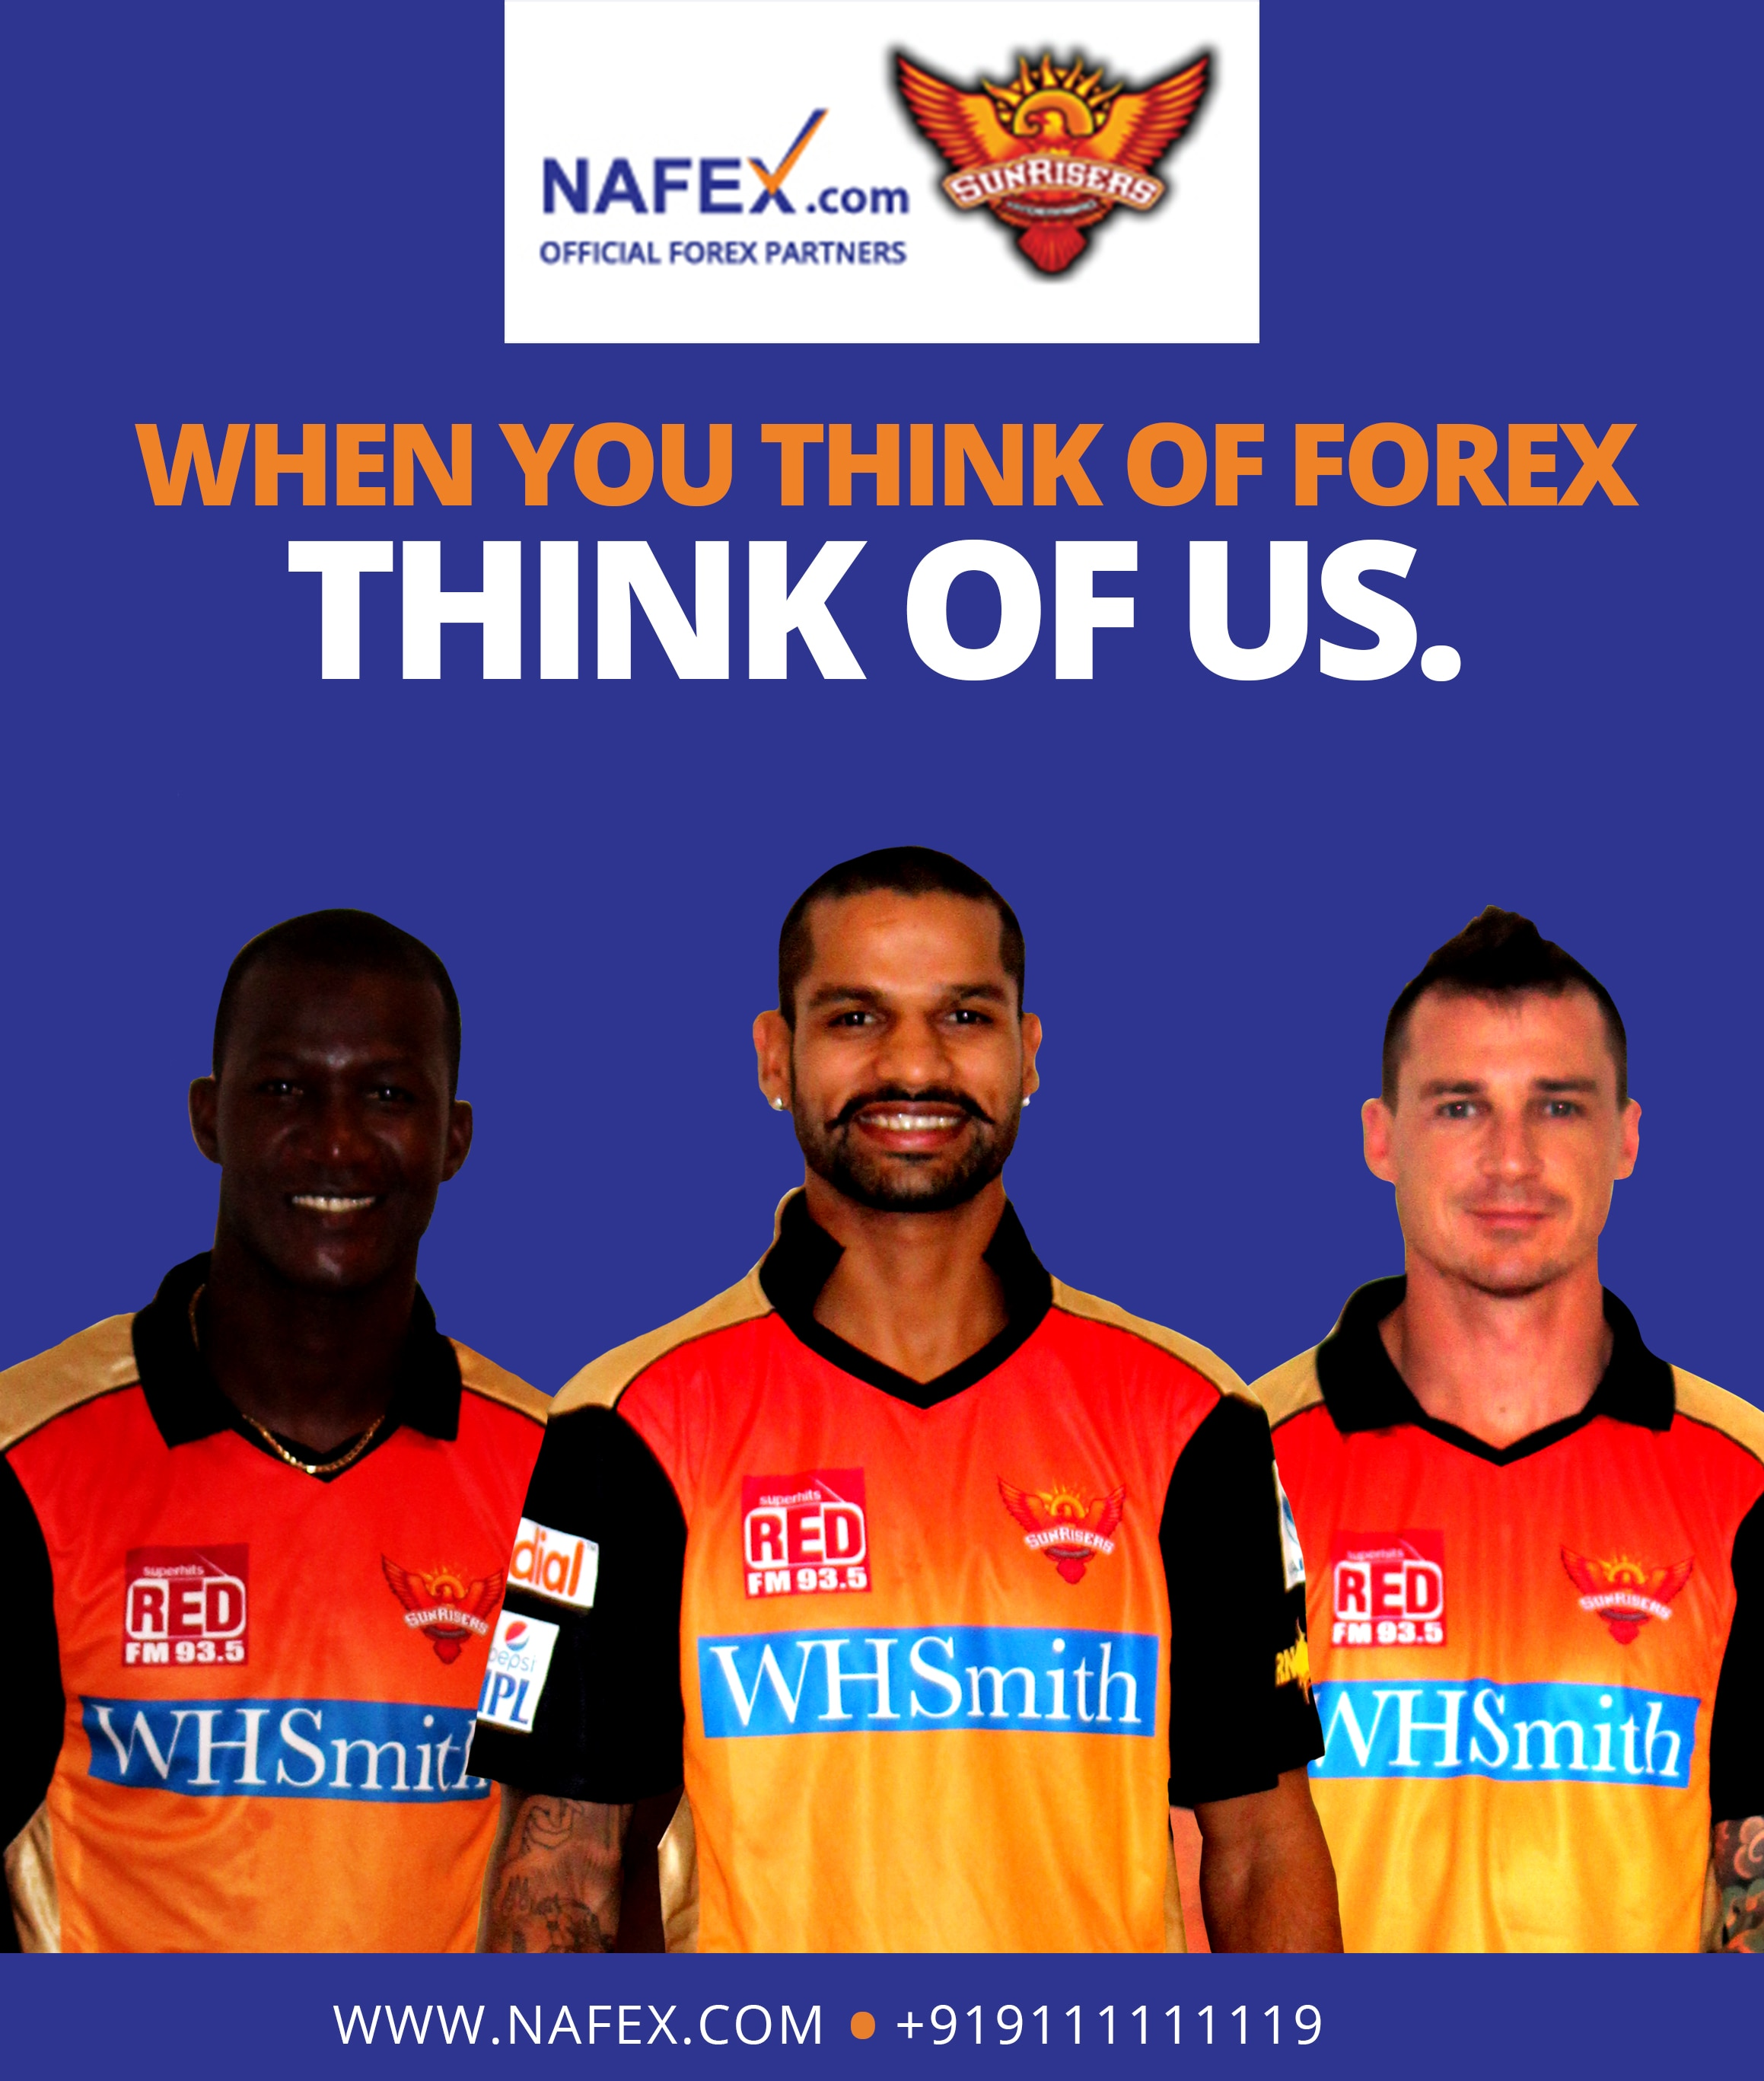 Nafex - Khandala Foreign Currency Exchange Dealers Agents Khandala, Online Travellers Cheque & Forex Prepaid Card